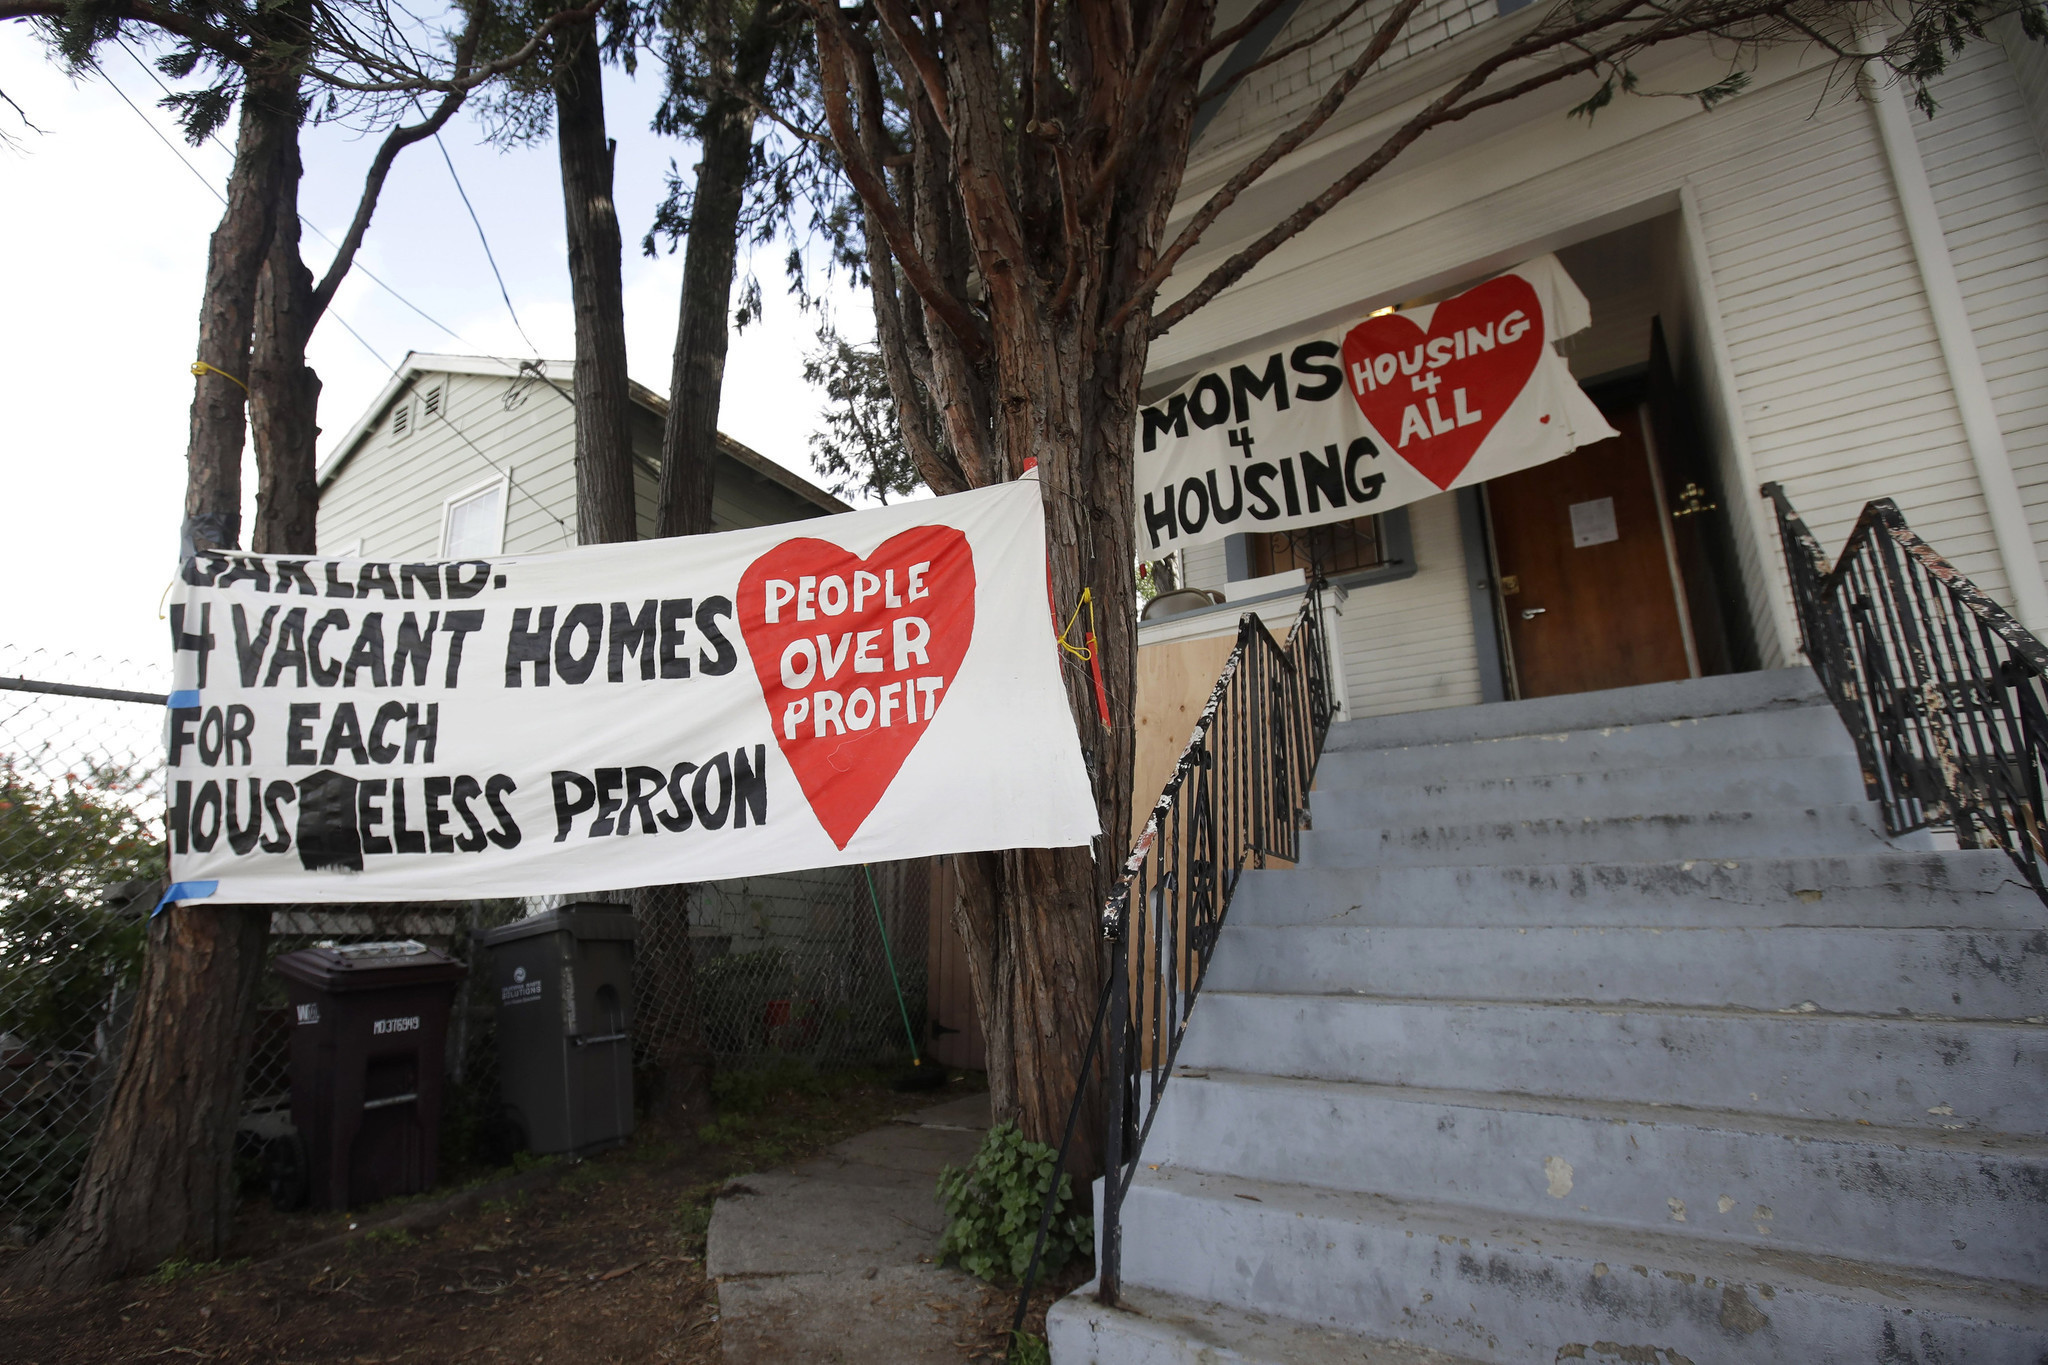 Homeless Oakland mothers forcibly evicted from vacant home